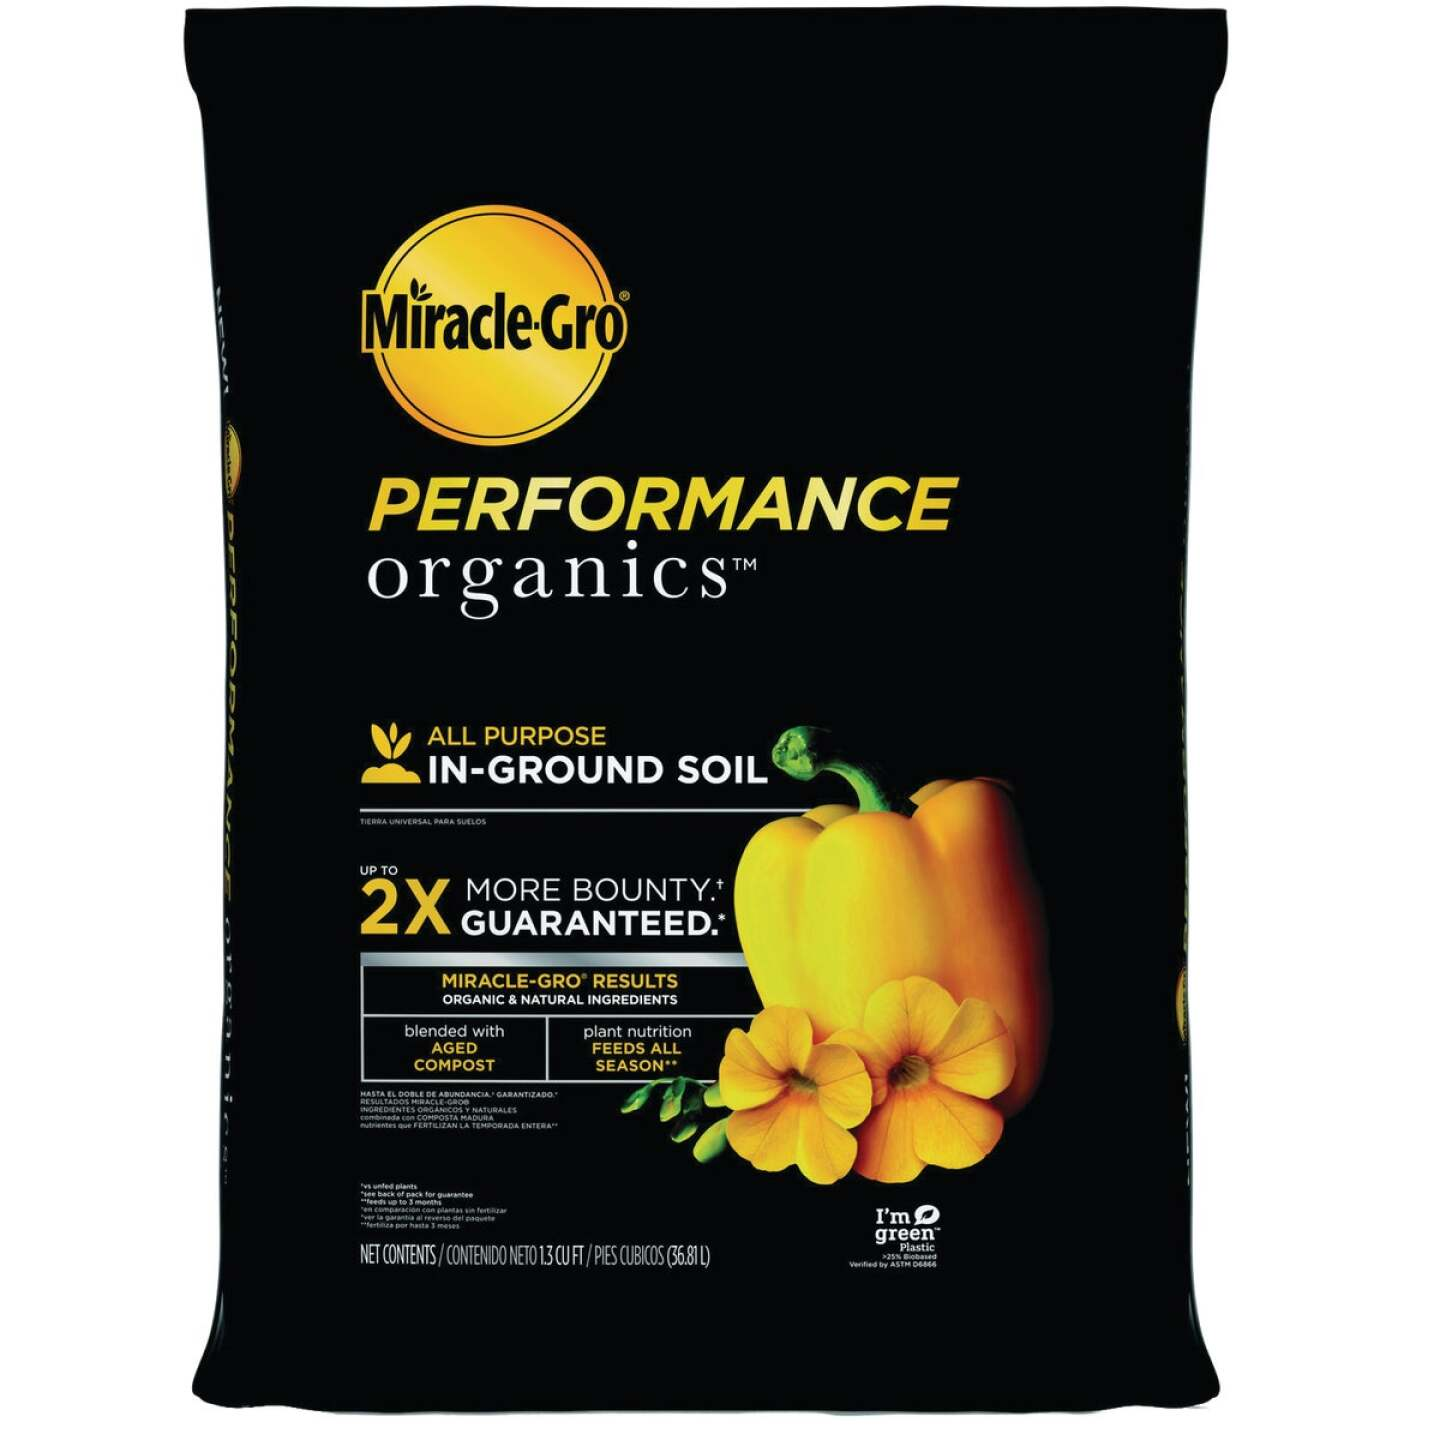 Miracle-Gro Performance Organics 1.33 Cu. Ft. 48 Lb. In-Ground All Purpose Garden Soil Image 1